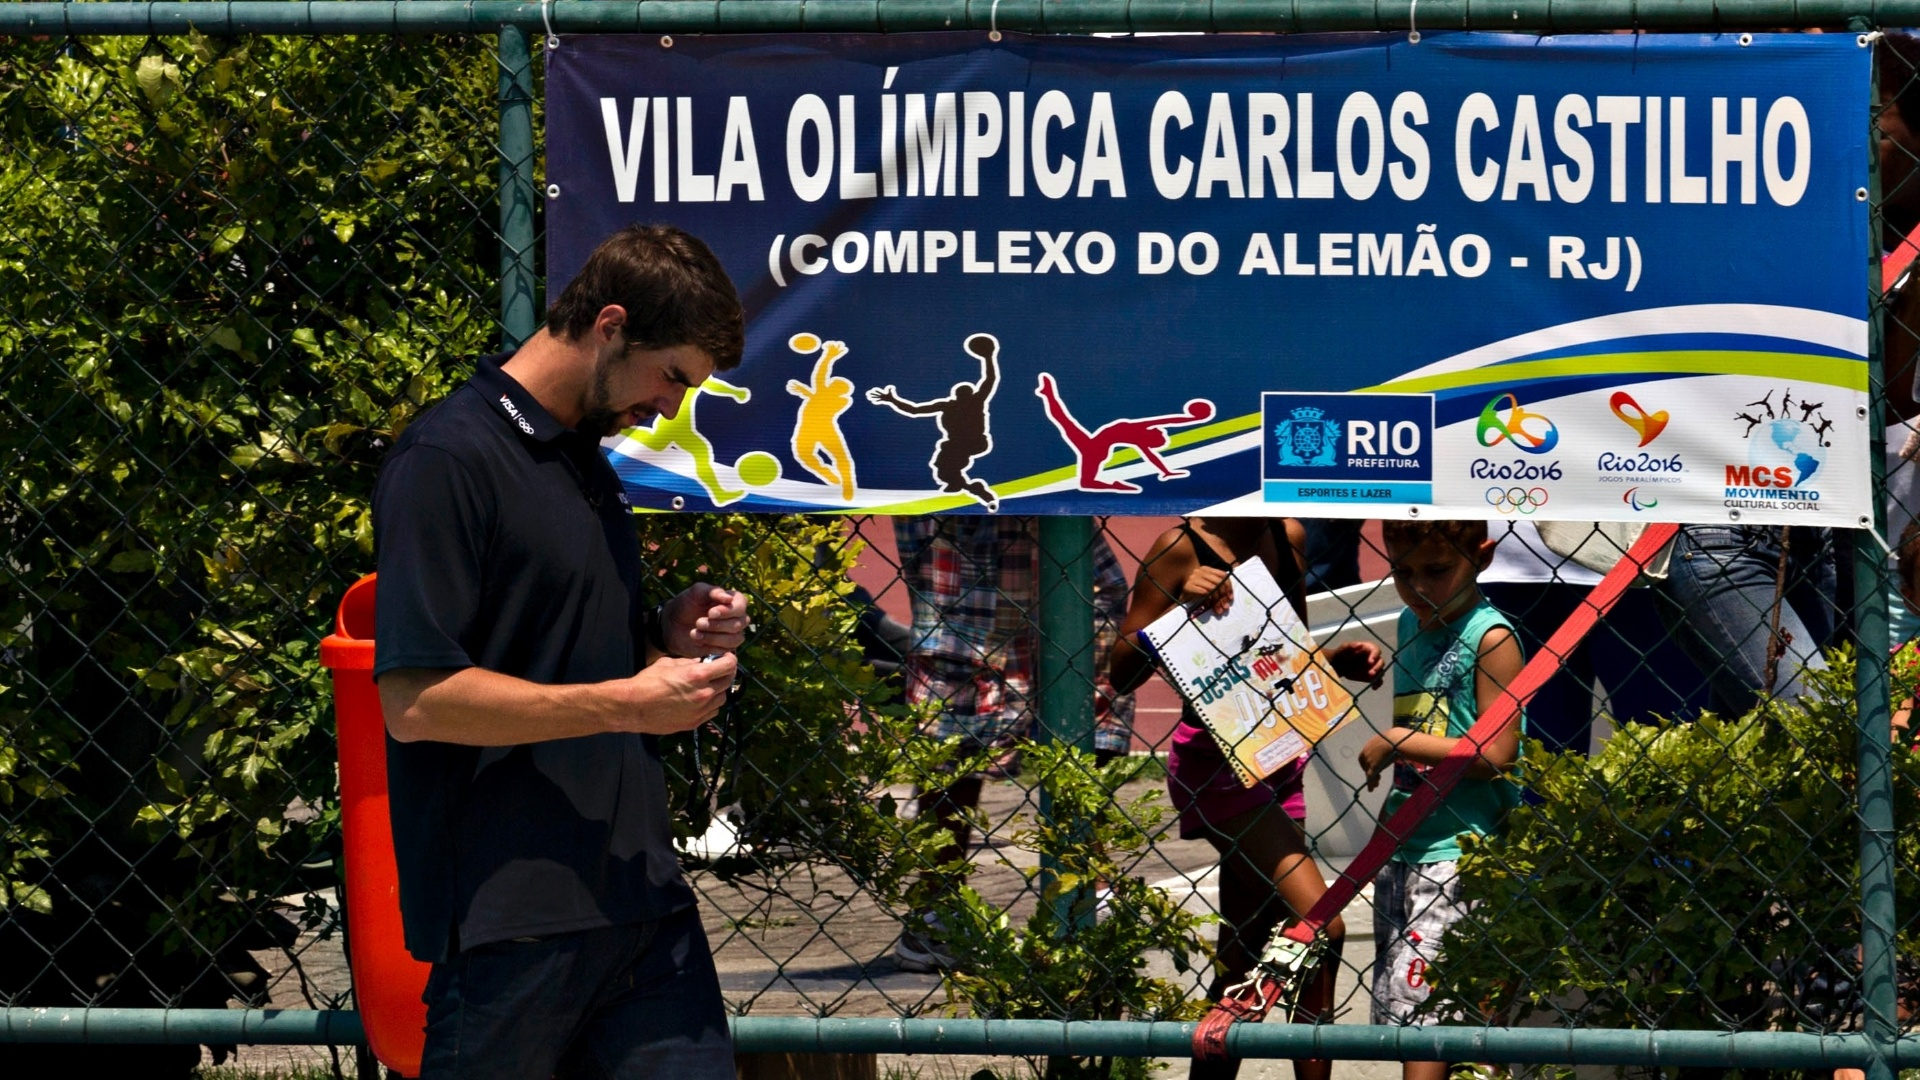 Phelps visitou a Vila Olmpica do Complexo do Alemo, no Rio de Janeiro